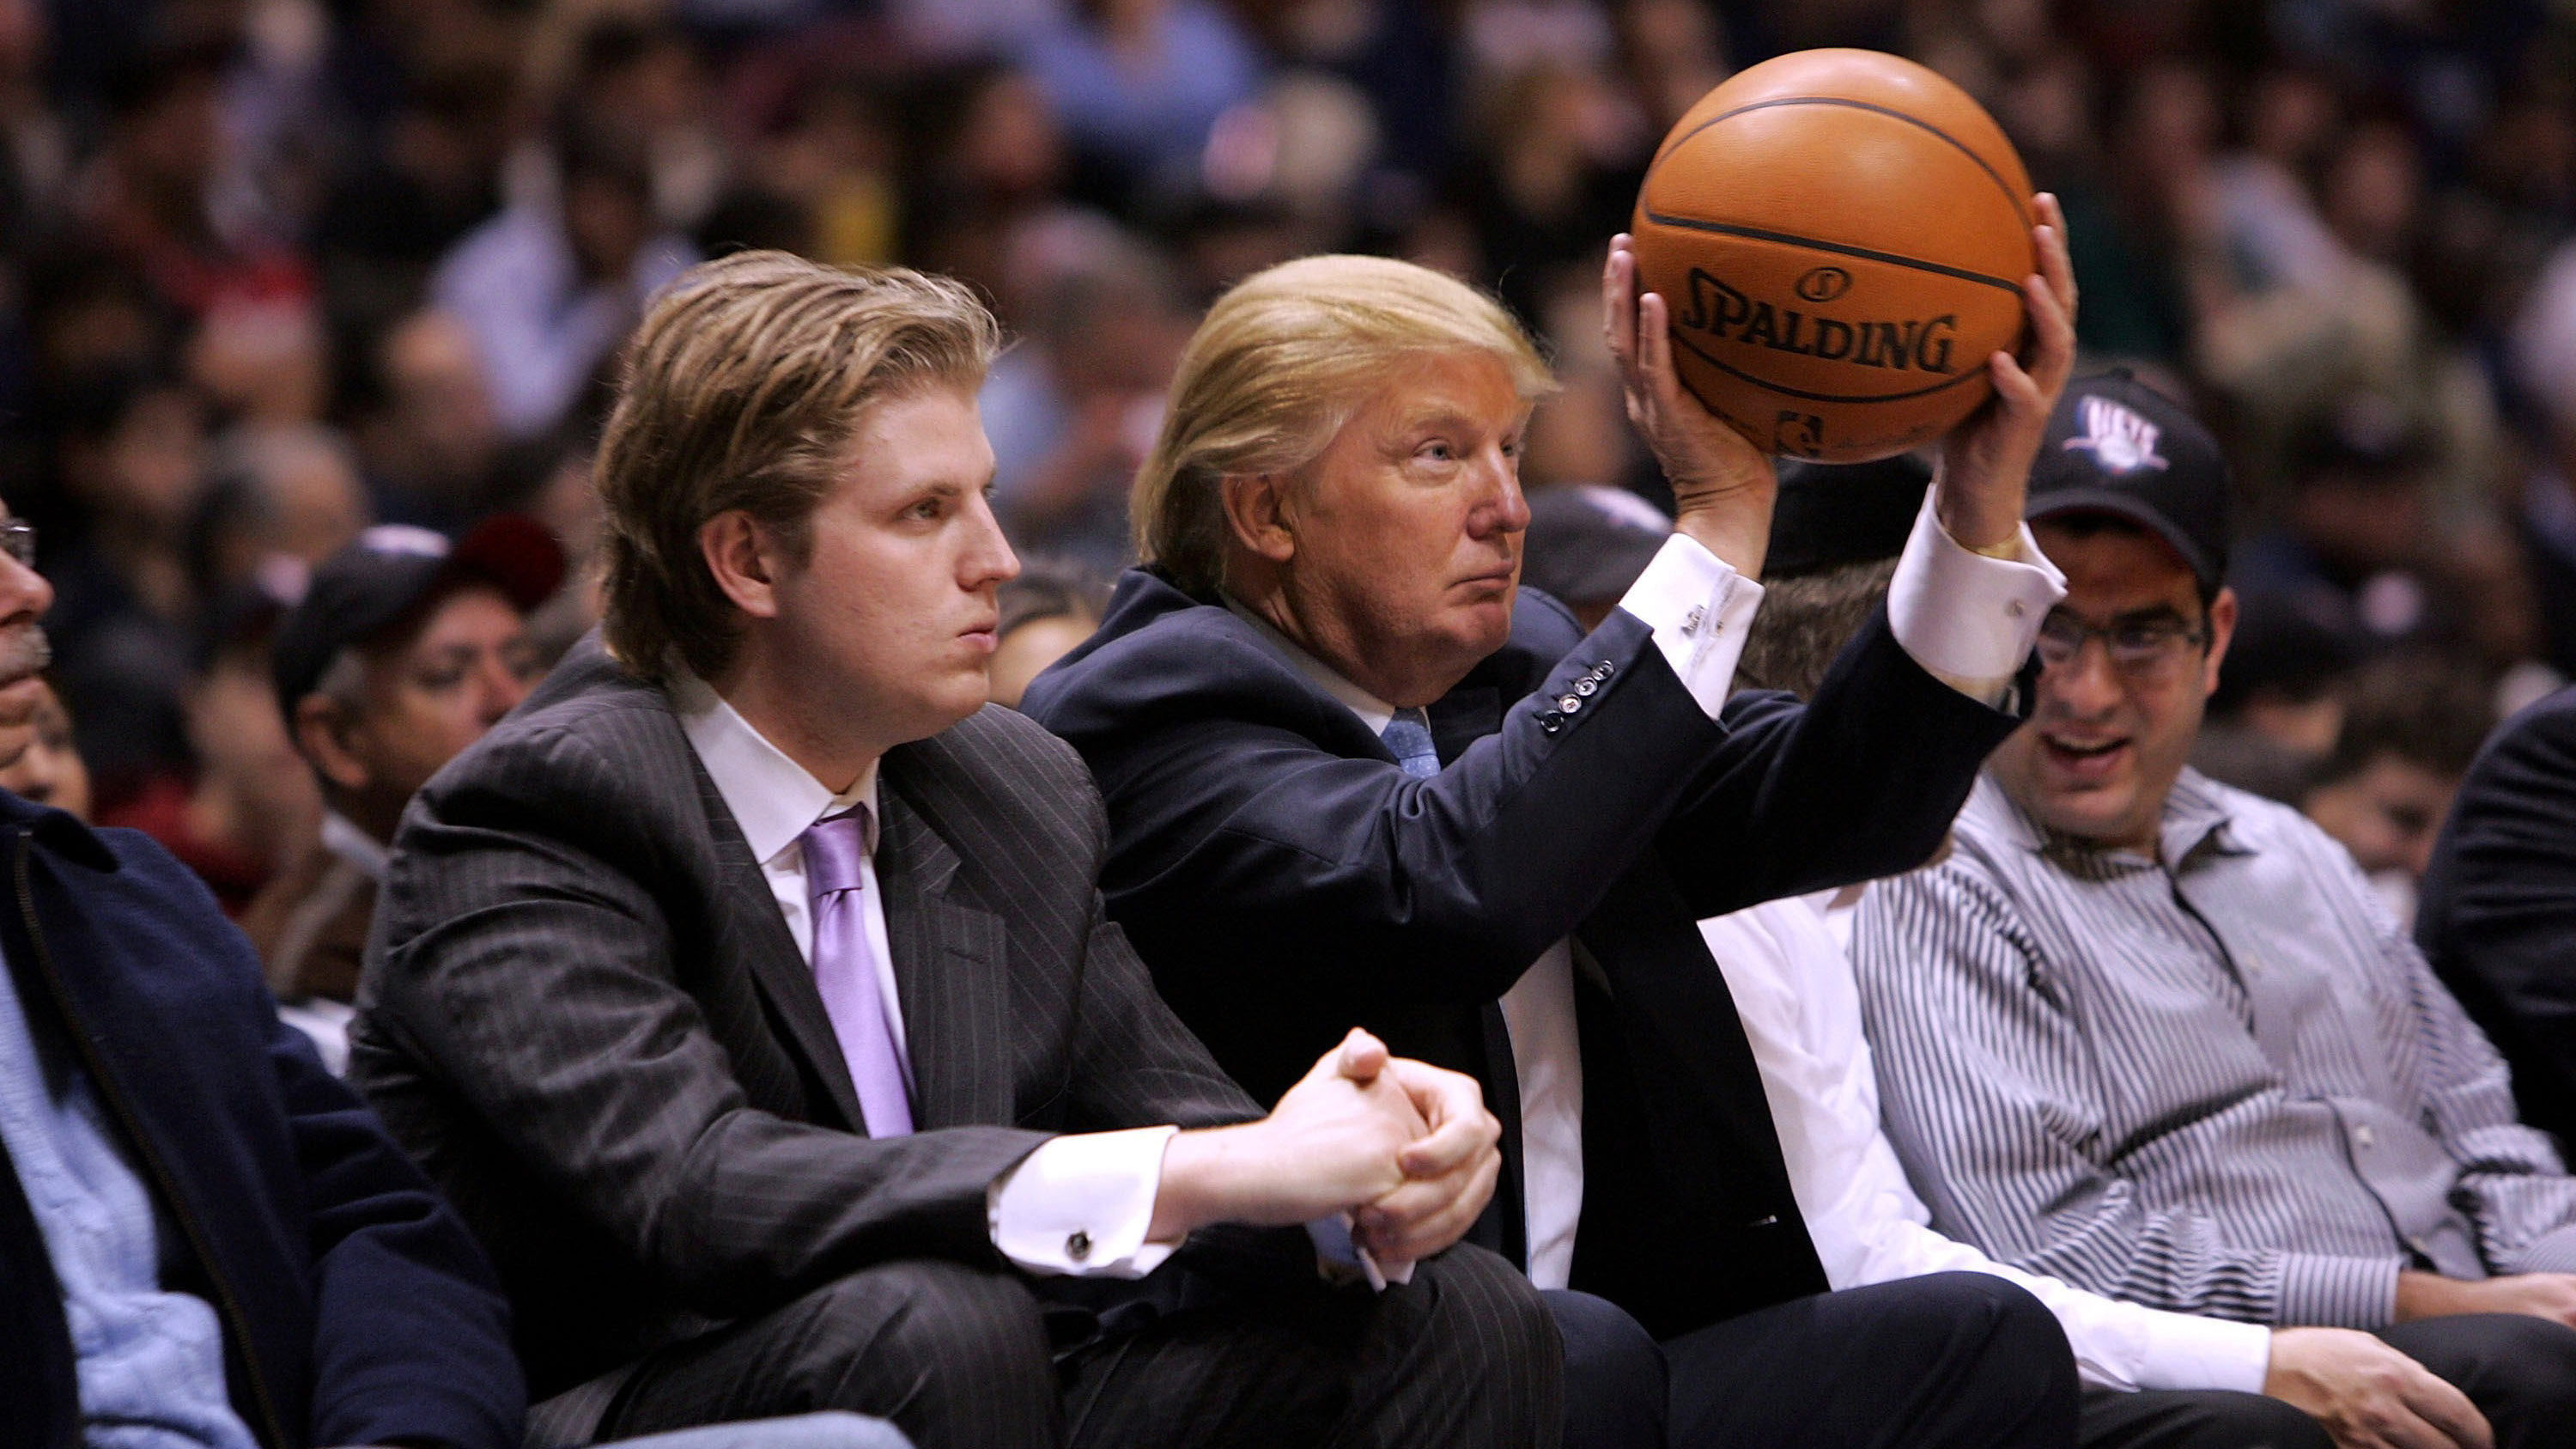 donald trump twitter sports takes grades